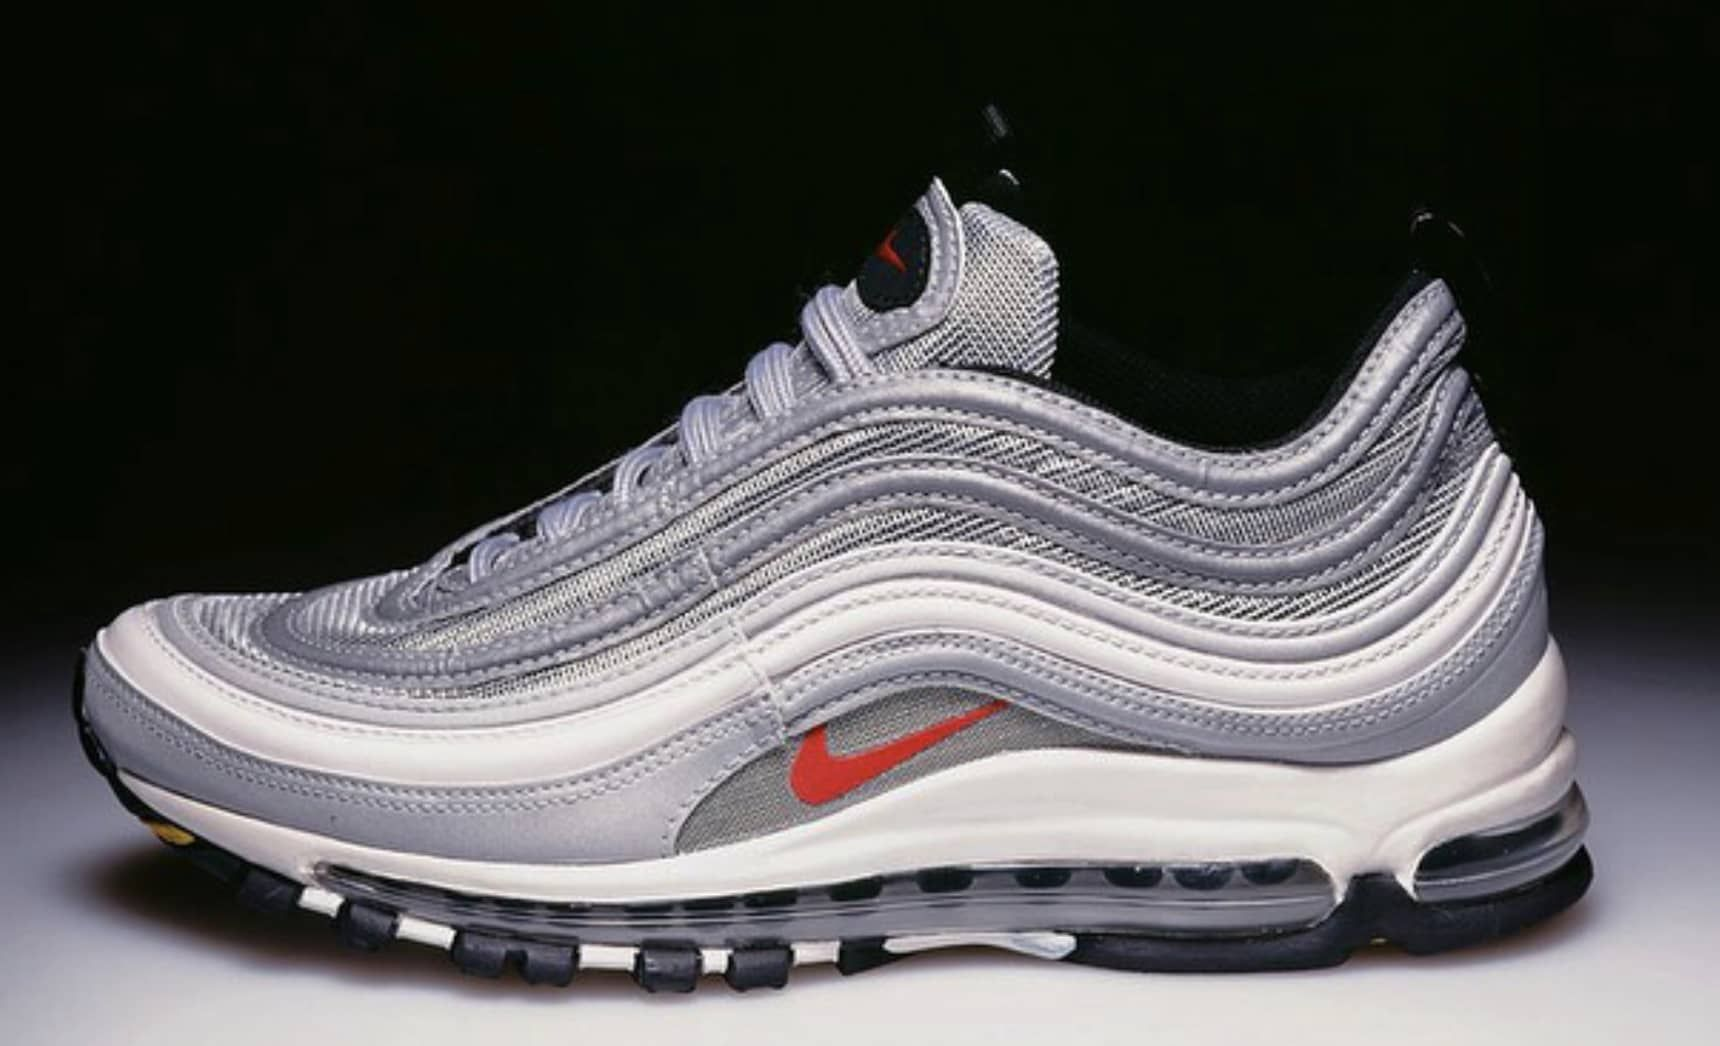 bb798f26c569 Nike Air Max 97 Designer Christian Tresser Shows Original  Silver Bullet   Sample